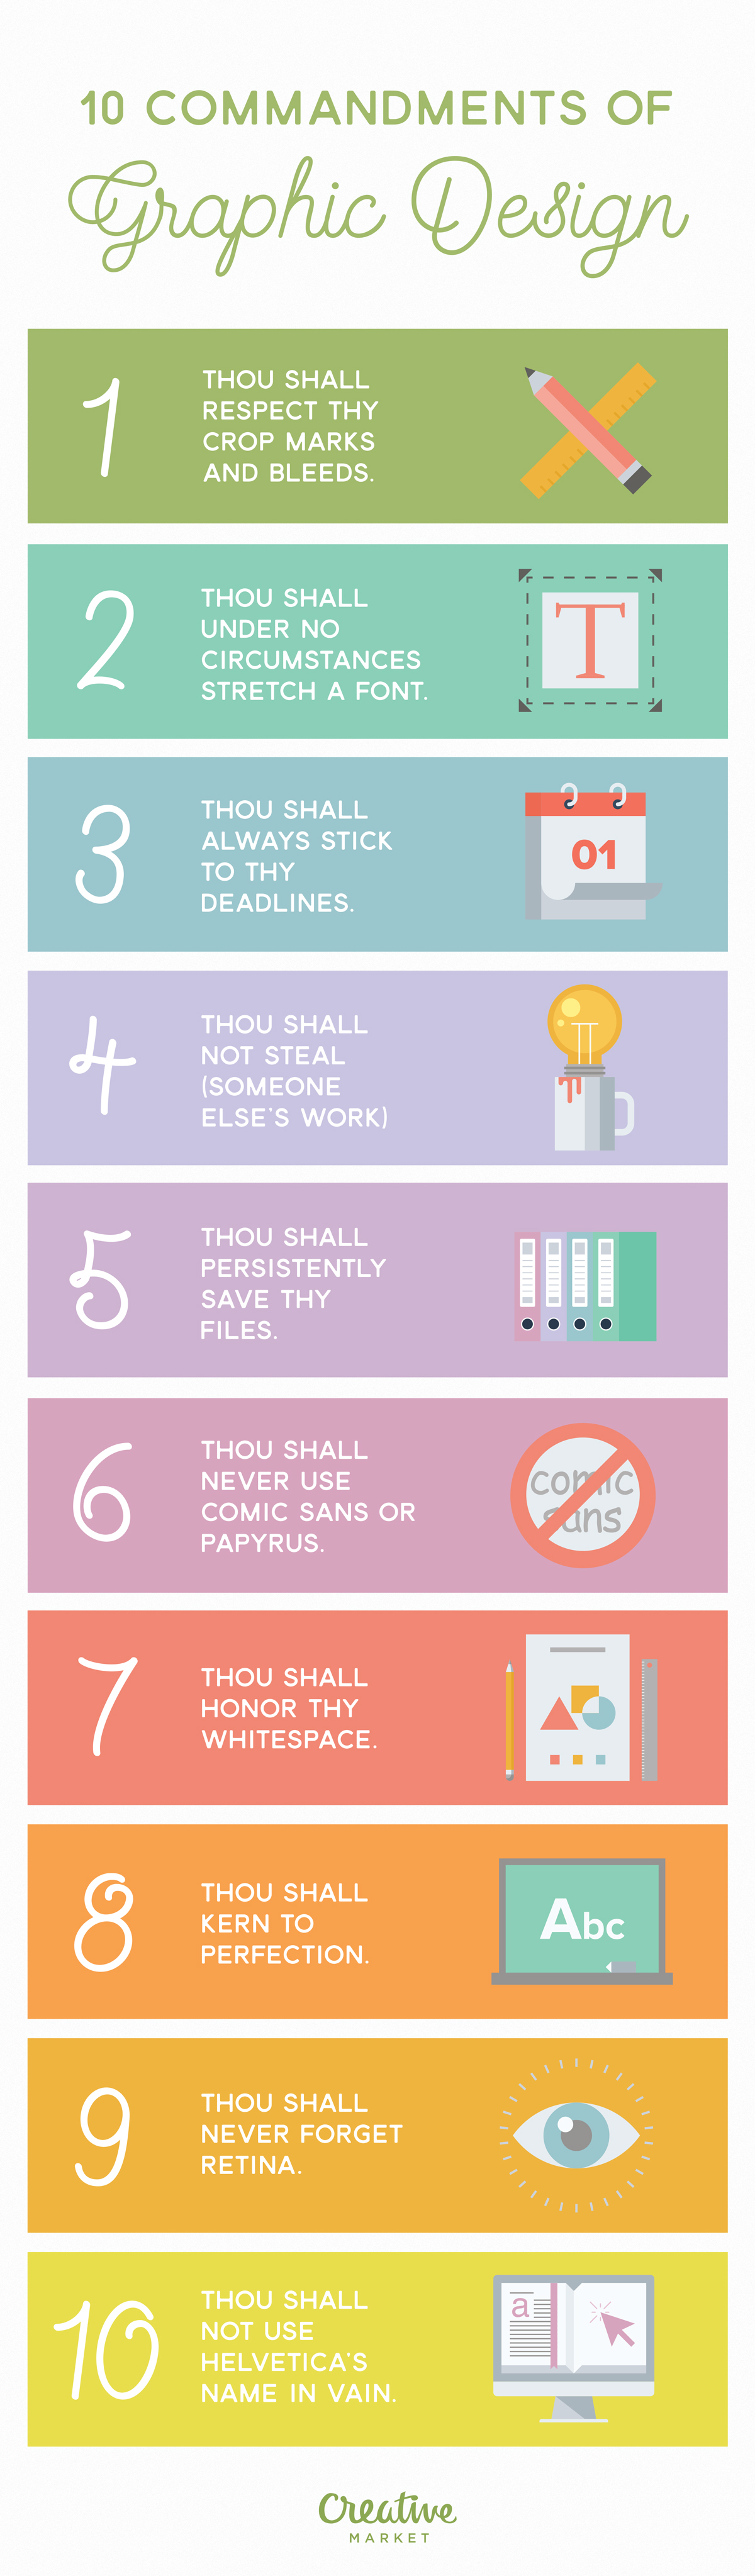 infographic: 10 commandments of graphic design - designtaxi